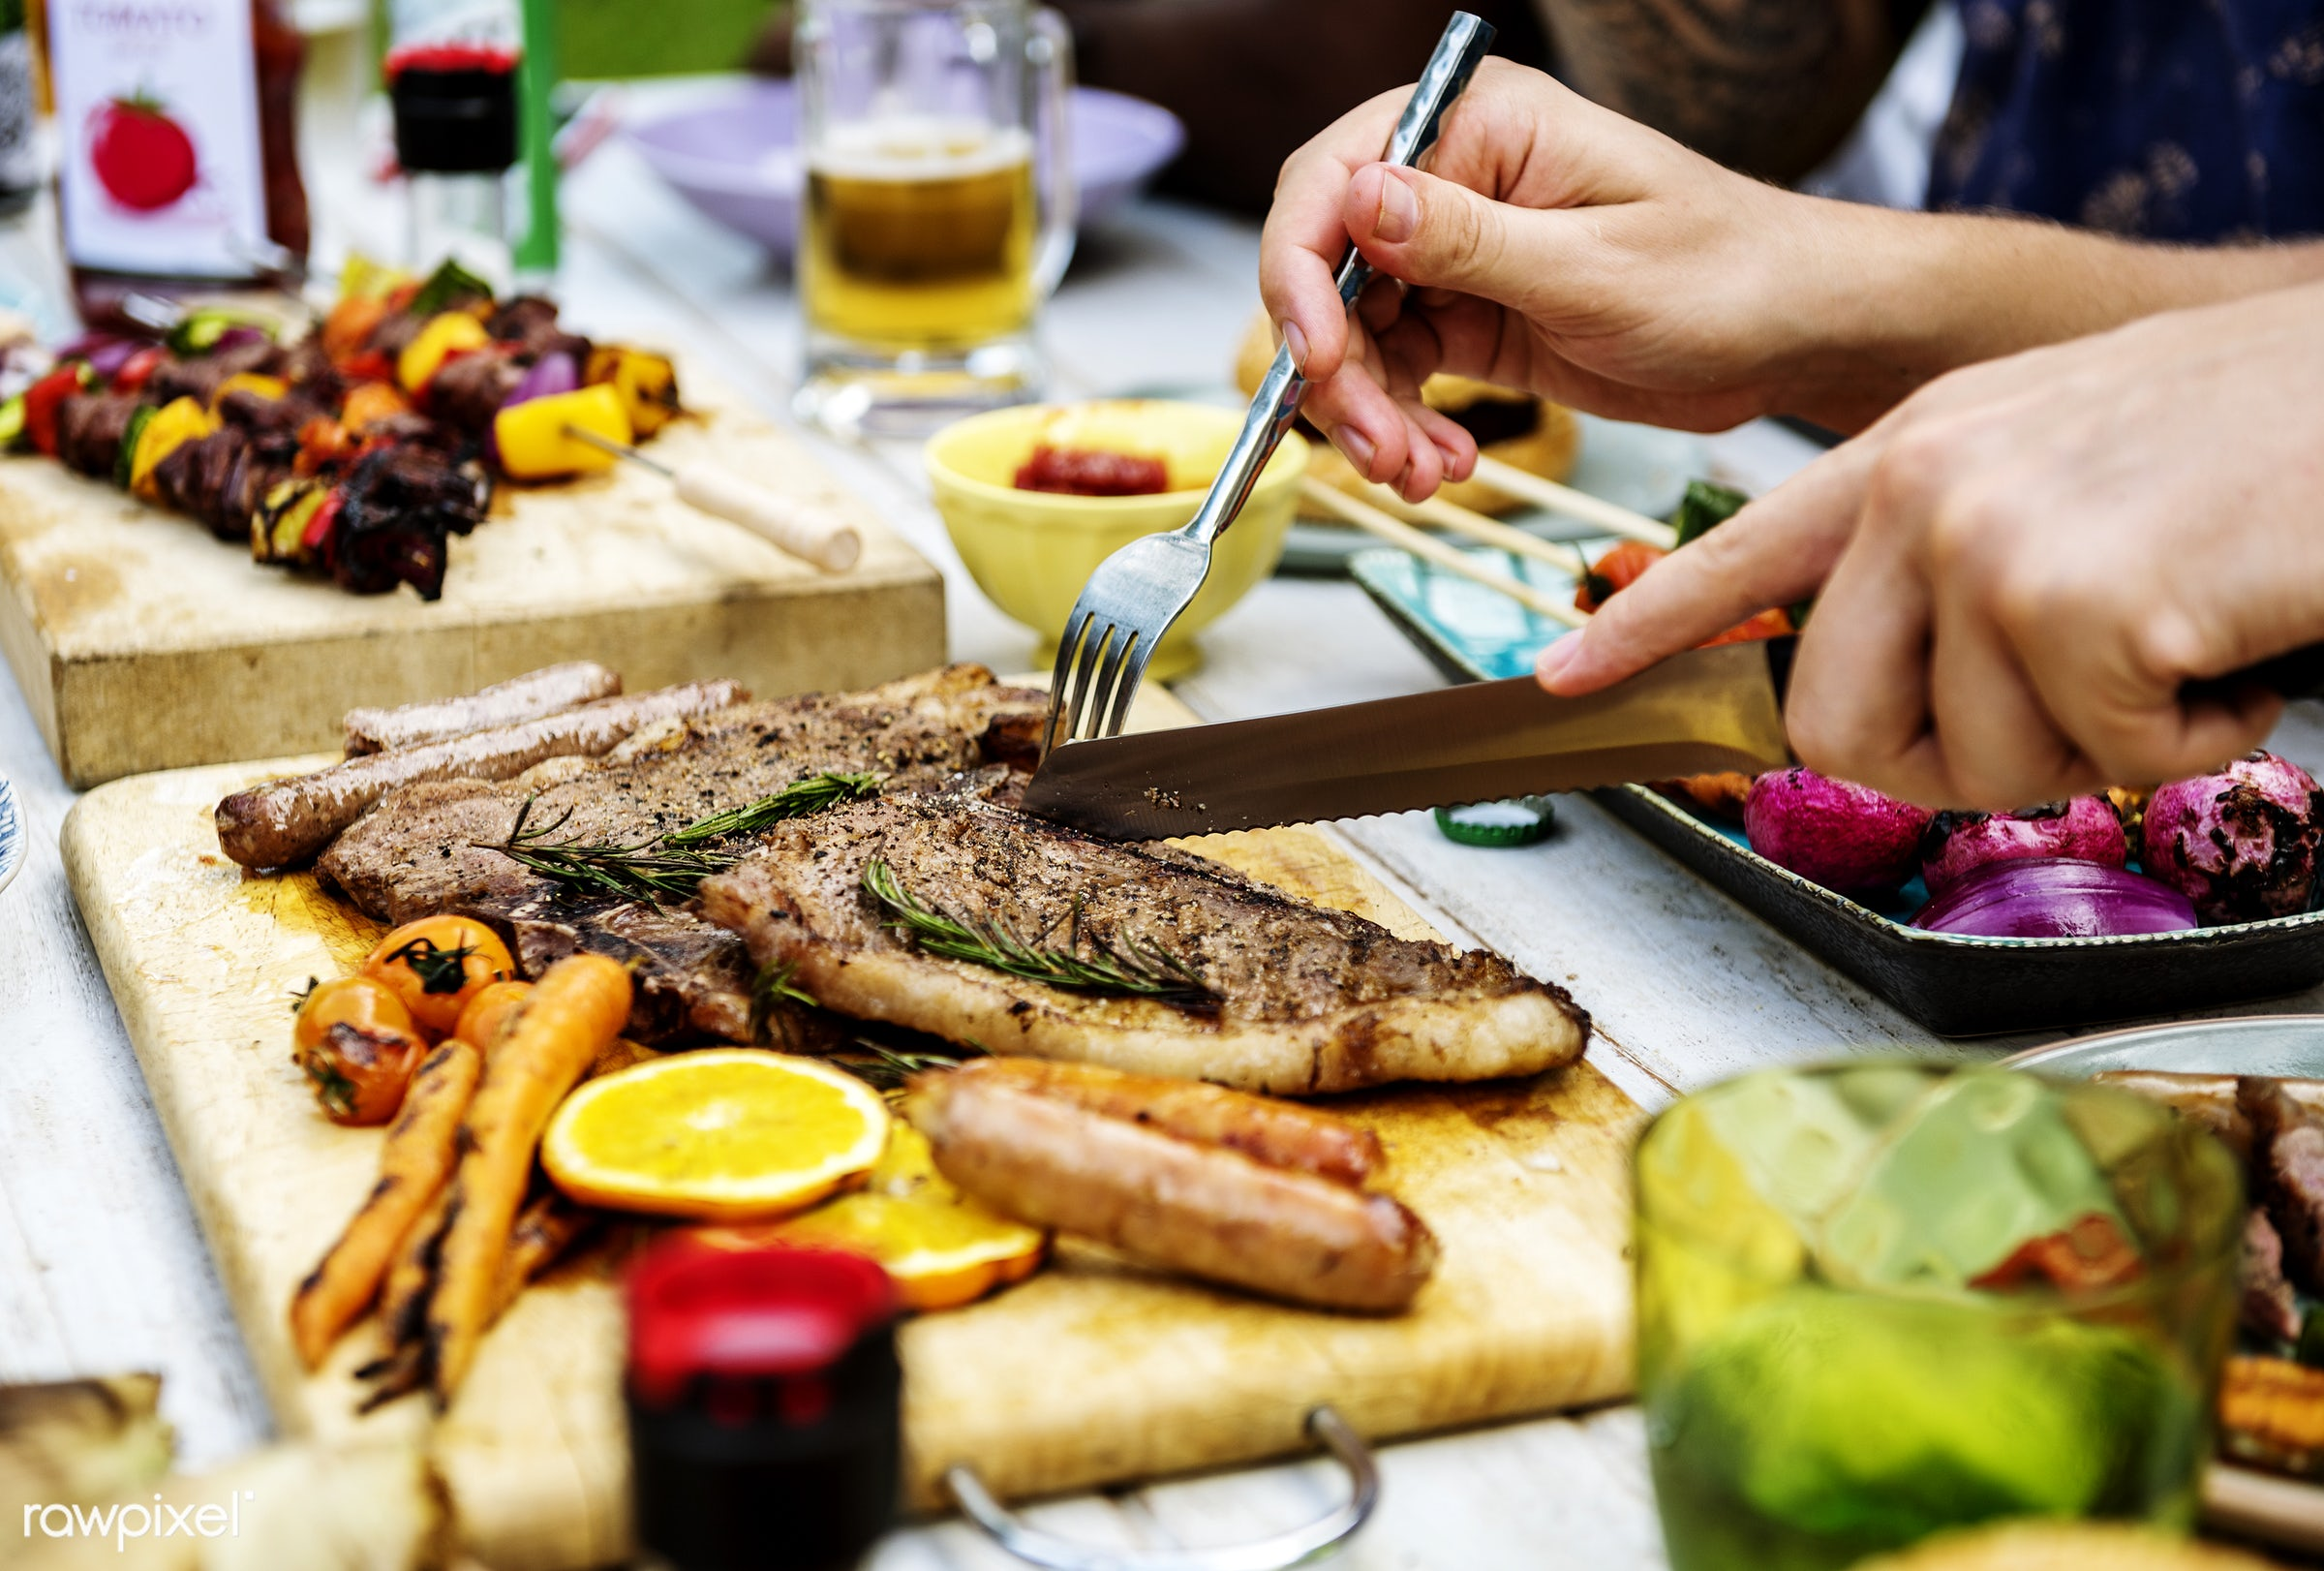 grill, tomato, party, homemade, hand, seasoning, meat, roasted, rosemary, activity, closeup, well done, meal, steak, cut...